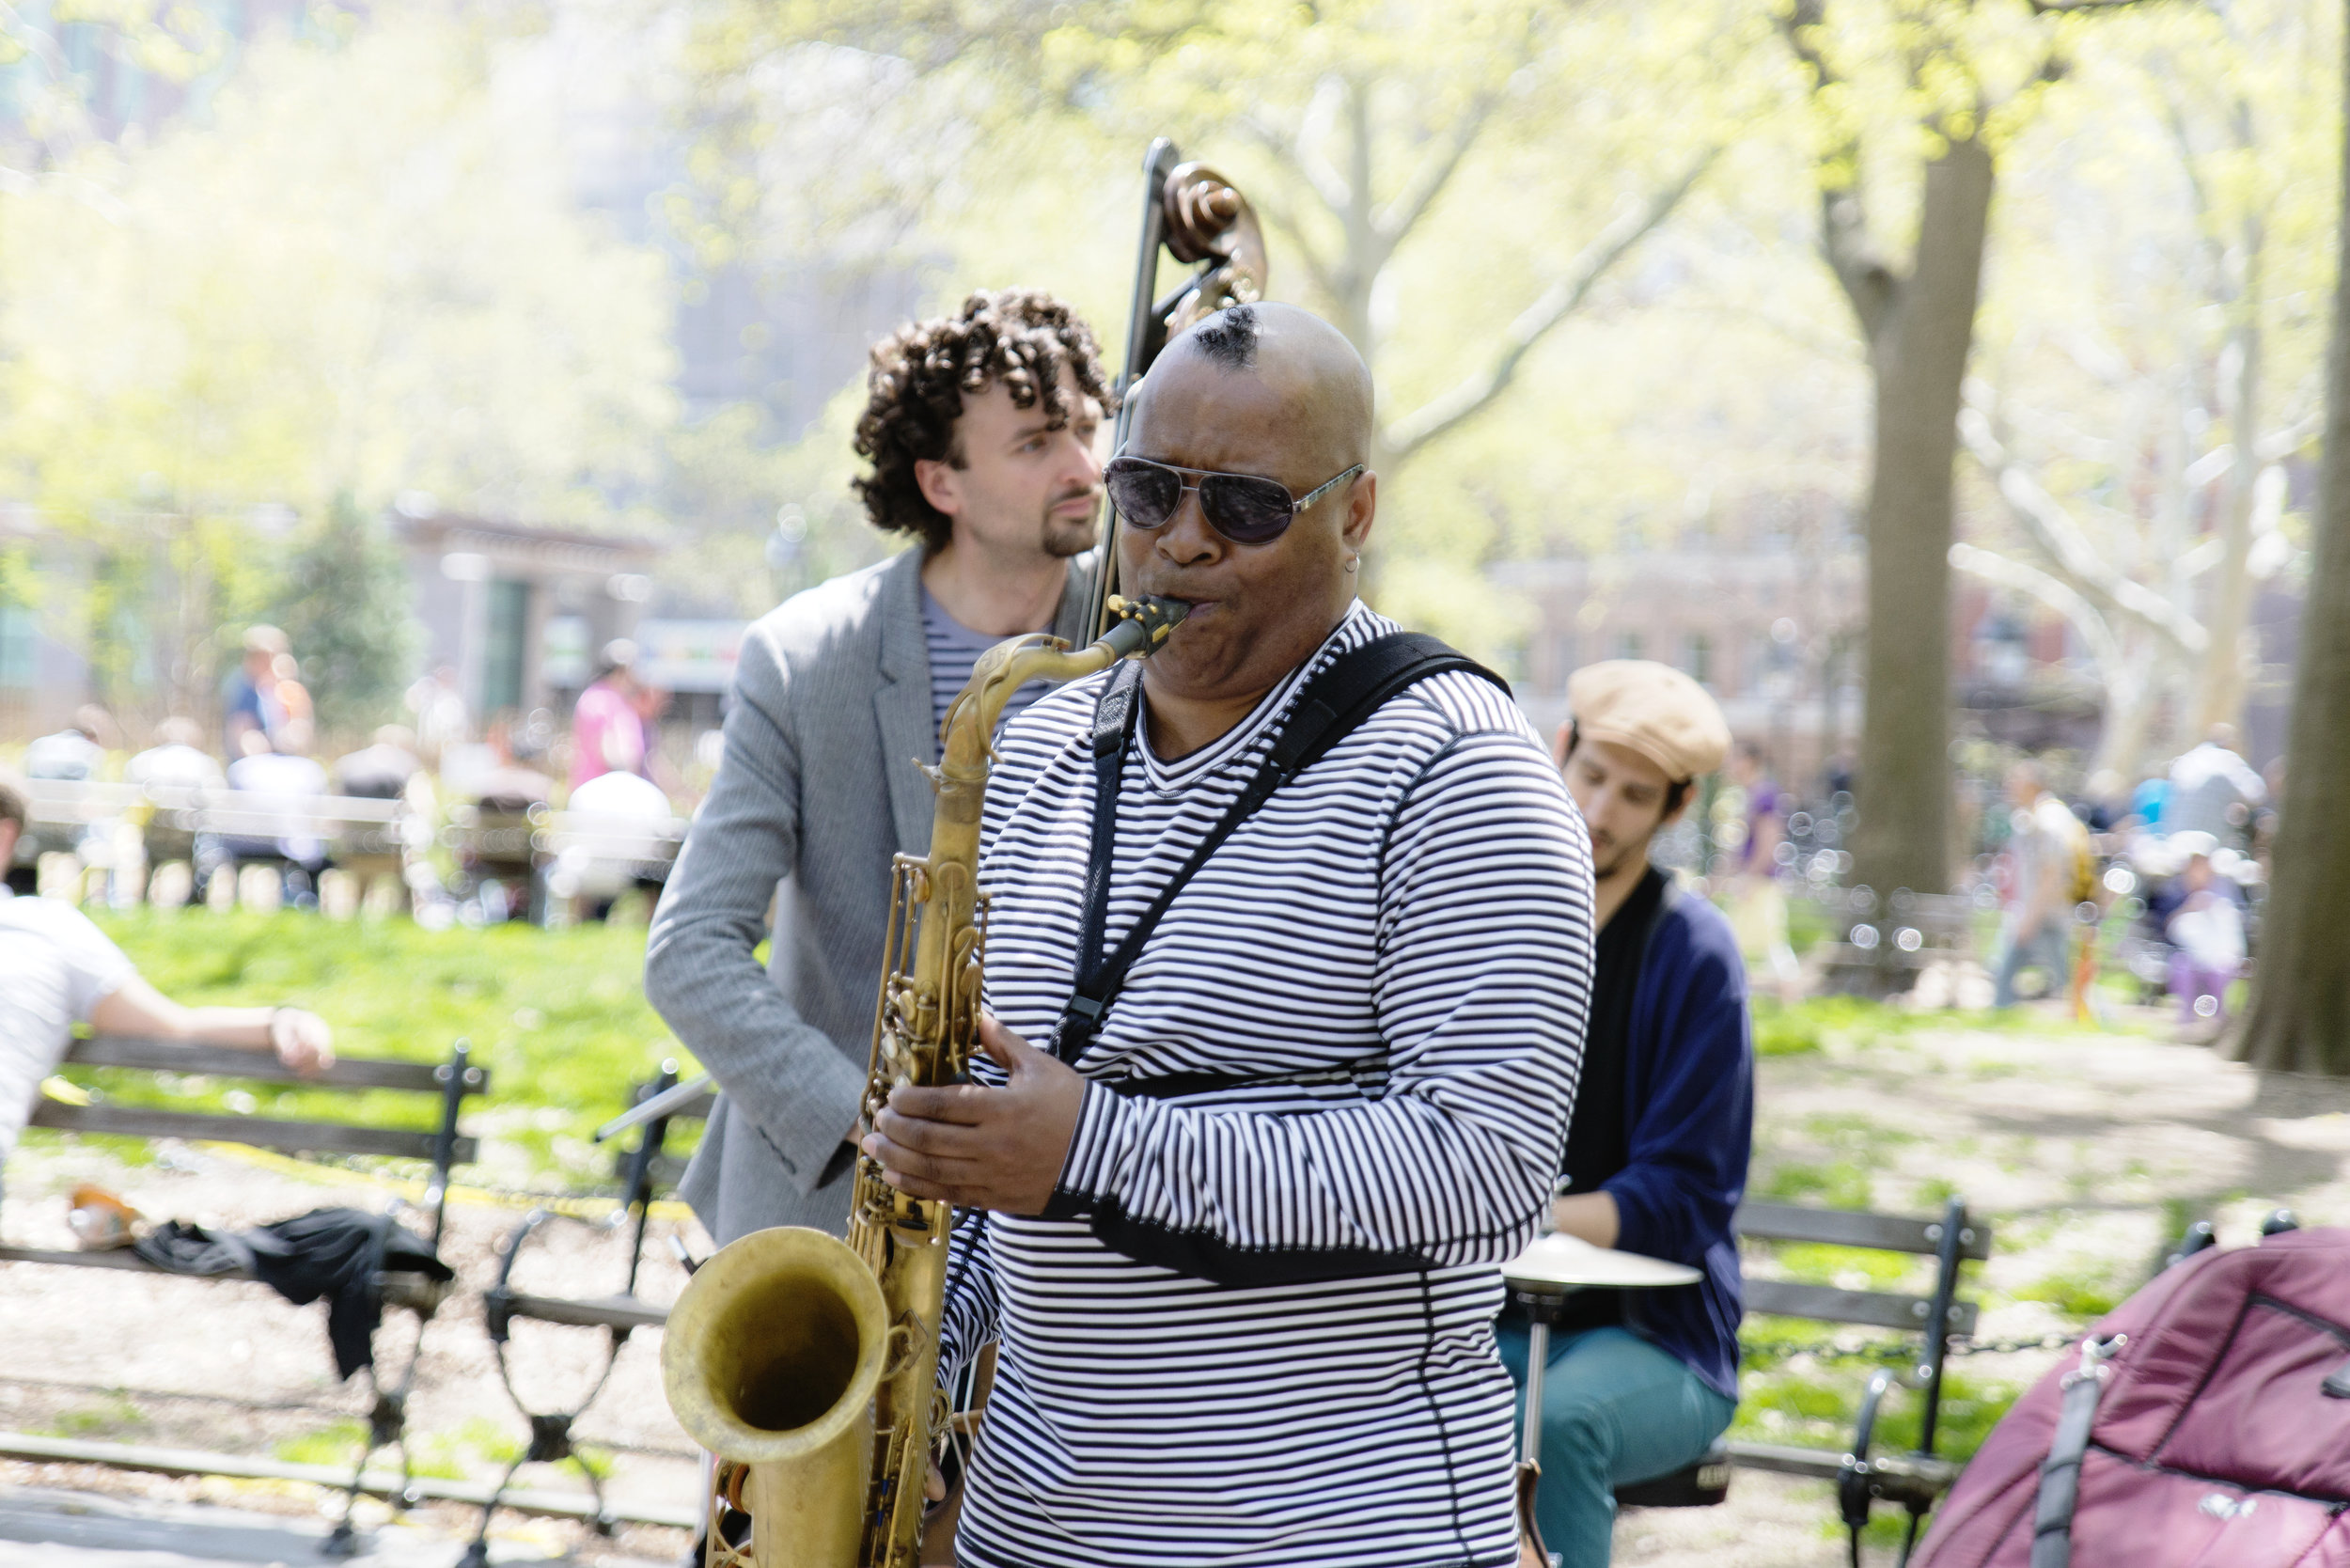 Jazz band playing in Central Park.